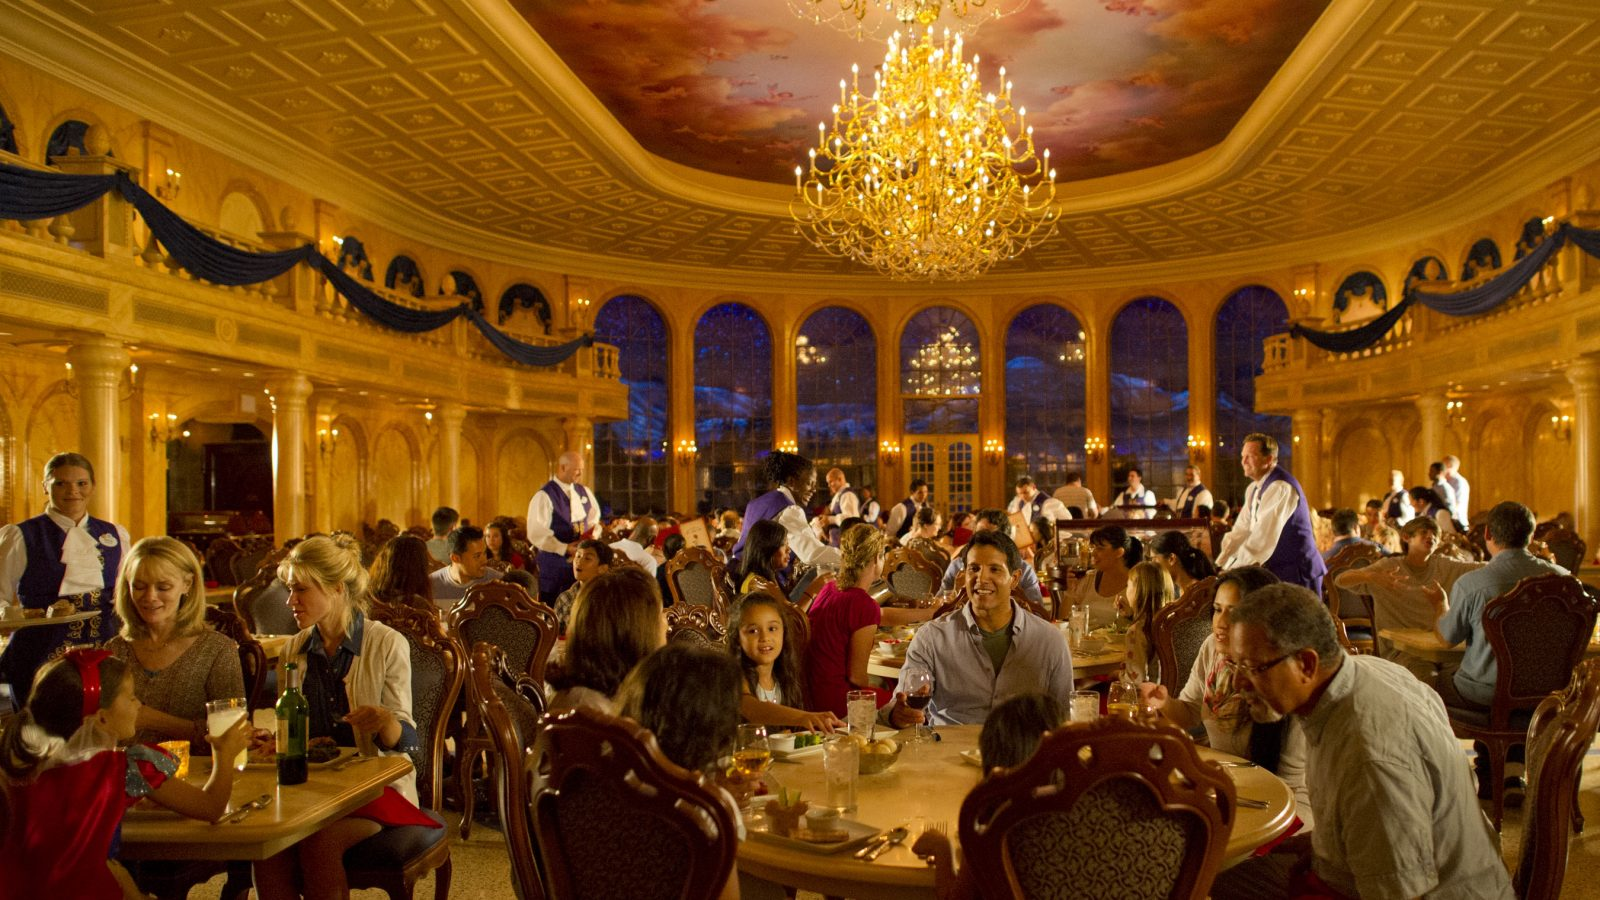 33 Best (and Worst!) Disney World Restaurants - Disney Trippers